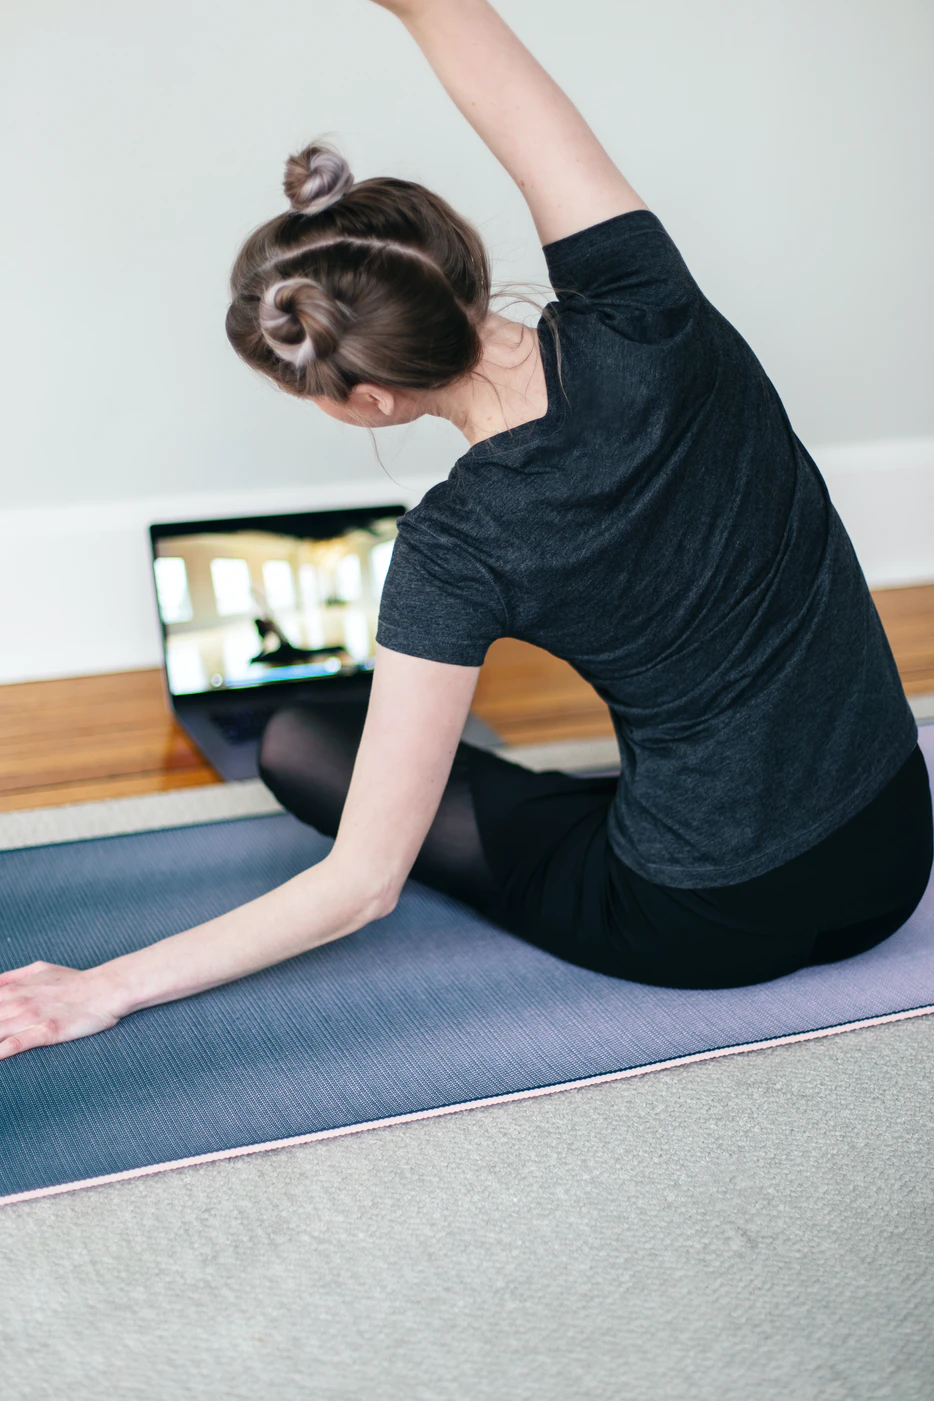 Young woman fitness instructor teaches a virtual fitness class from her home.